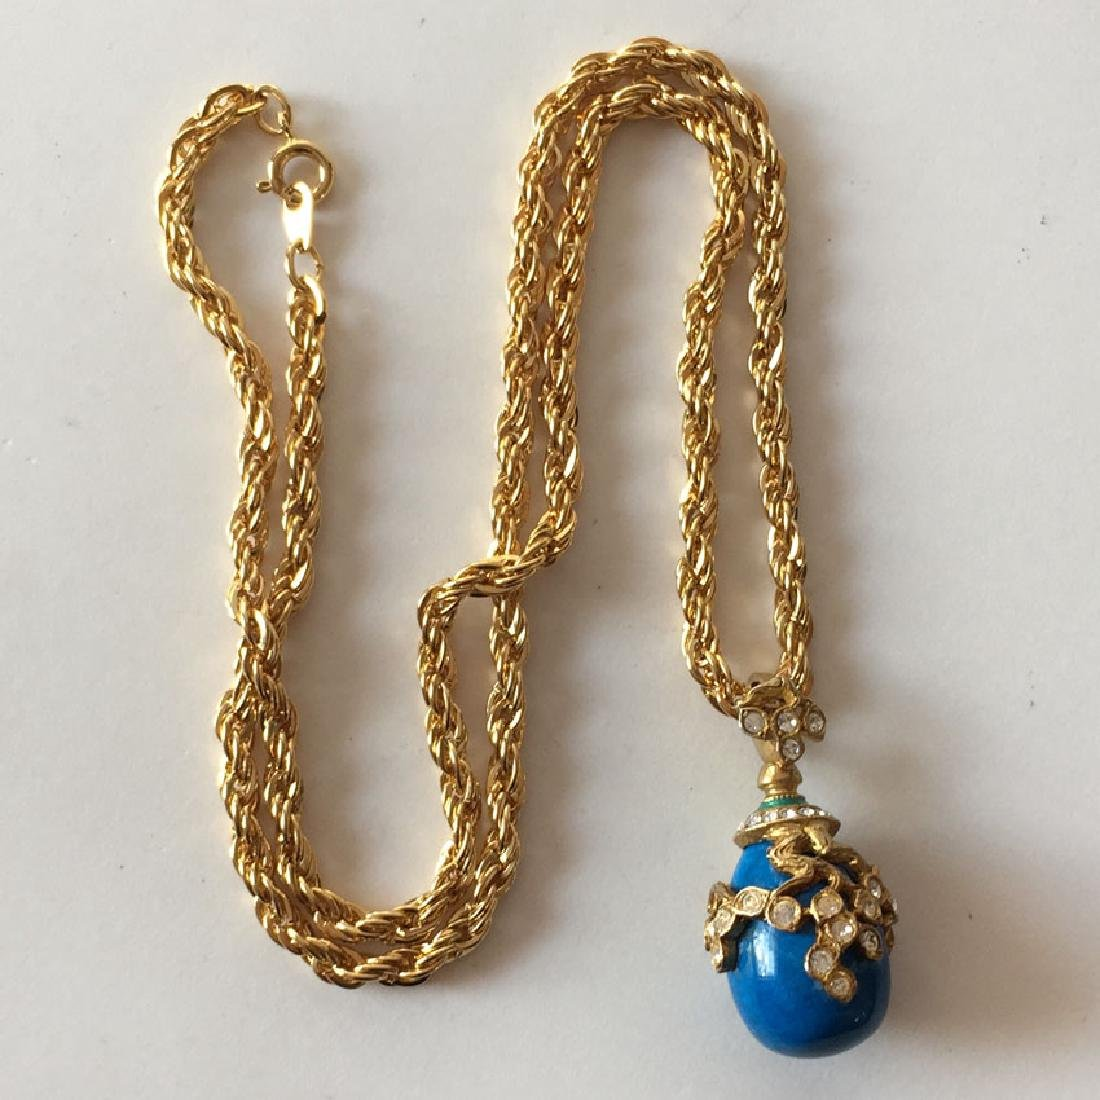 Gold plated diamond cut thick rope style chain and blue